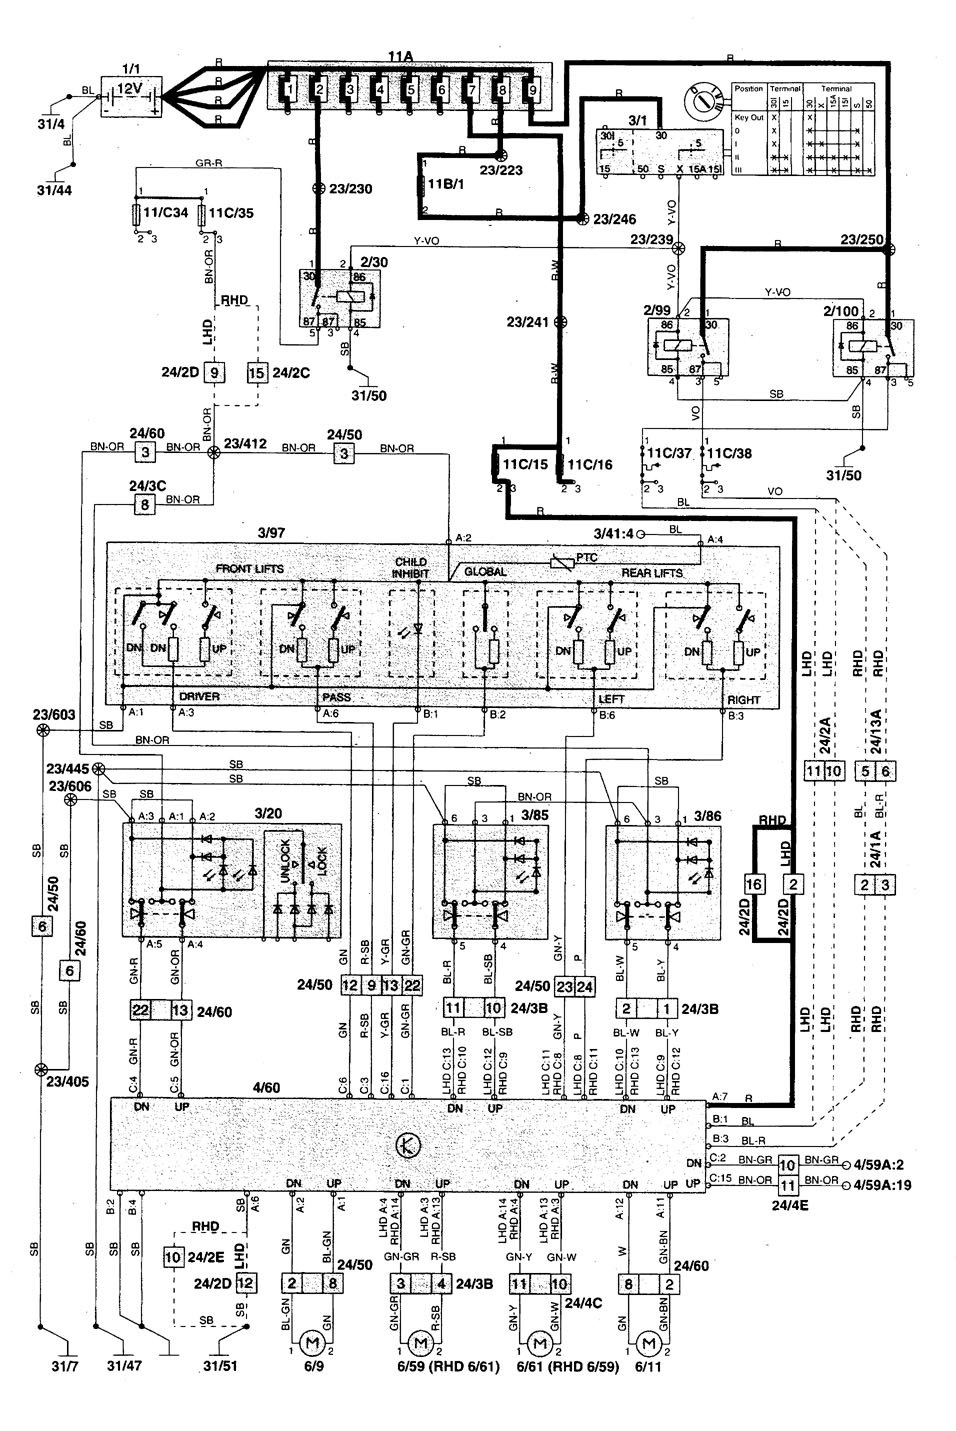 Volvo Penta Wiring Harness Diagram For 2004 C70 Great Design Of Best Site Honda Civic